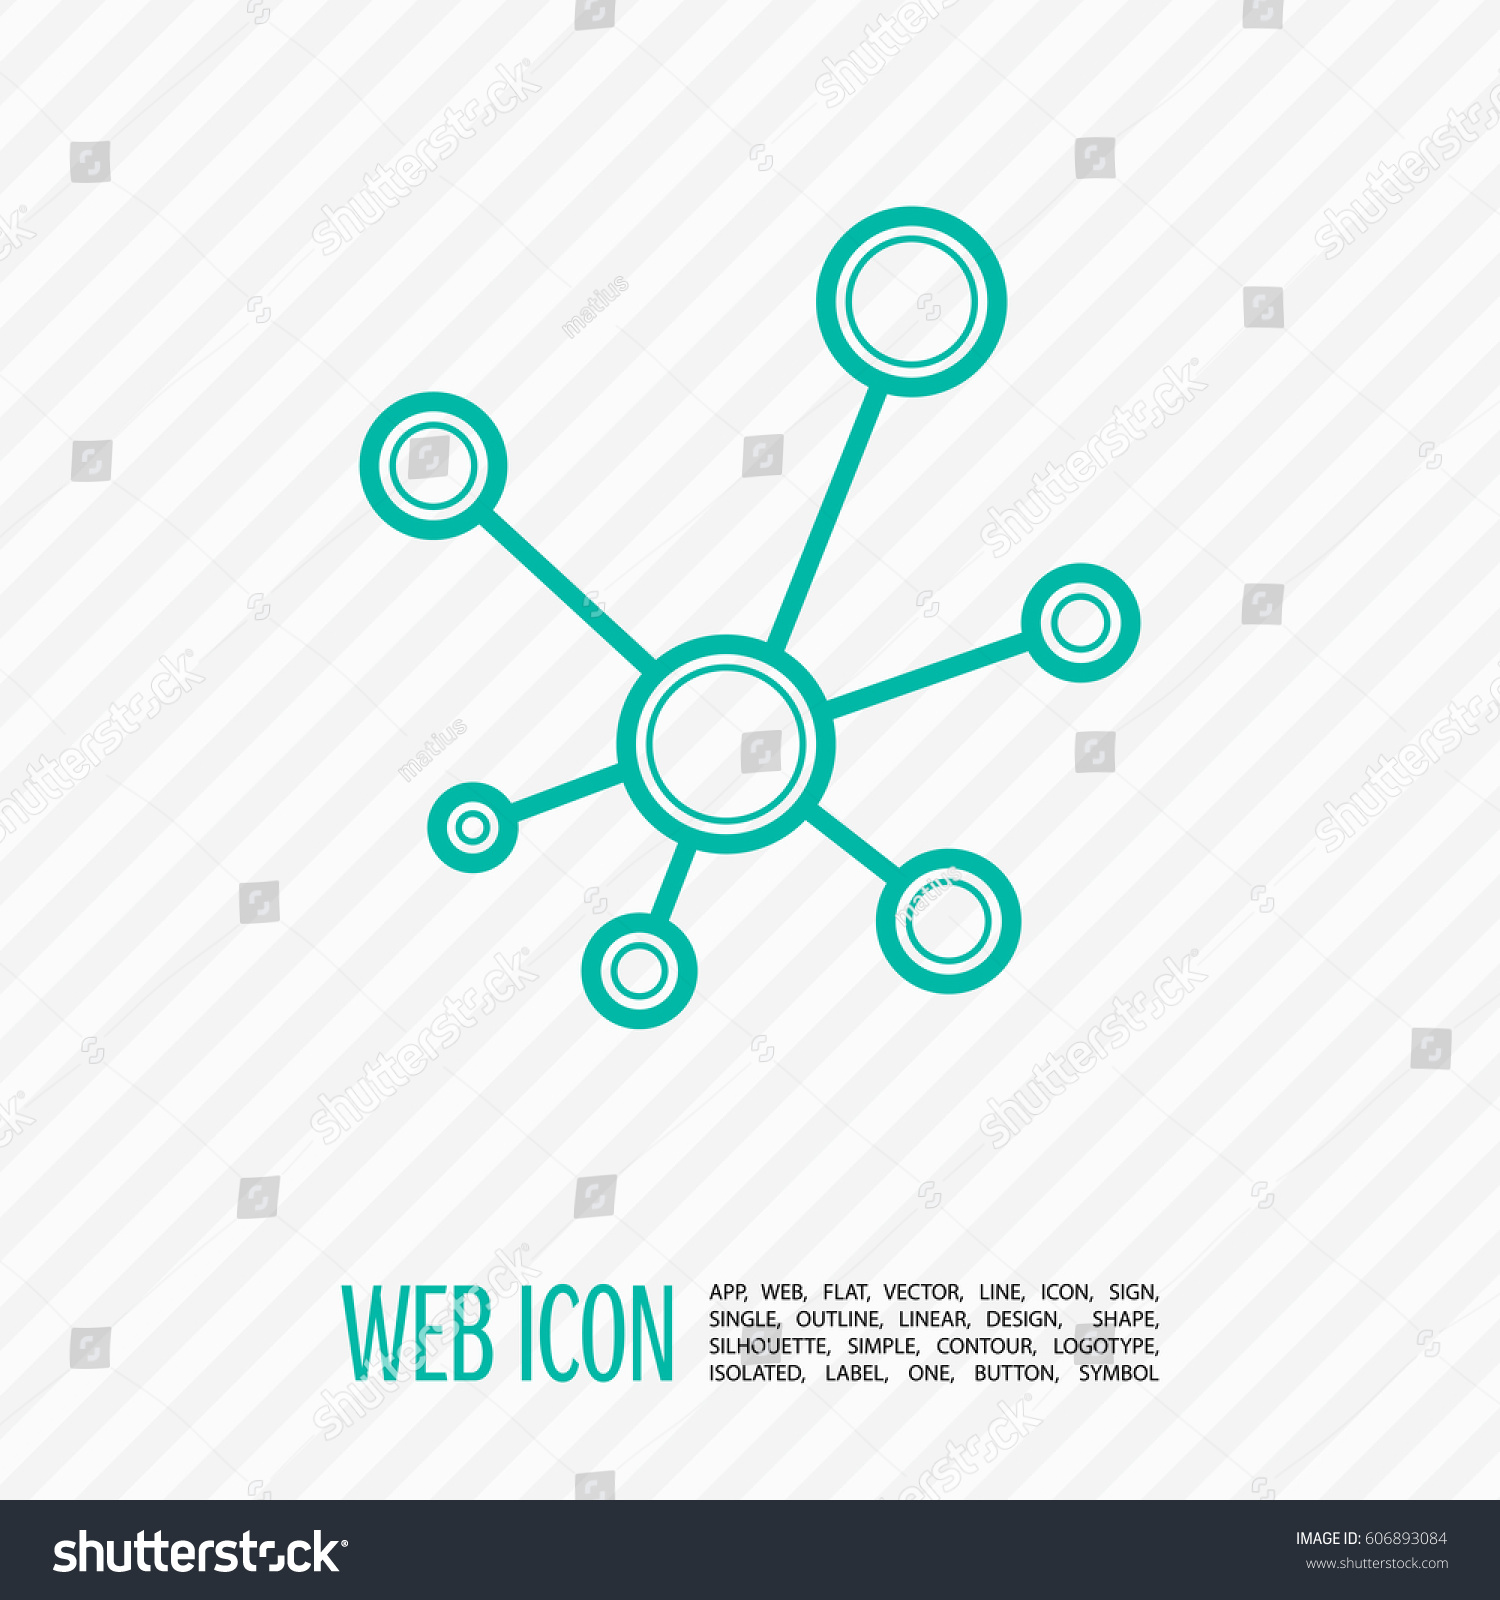 Hub Network Connection Isolated Minimal Flat Stock Vector 606893084 ...